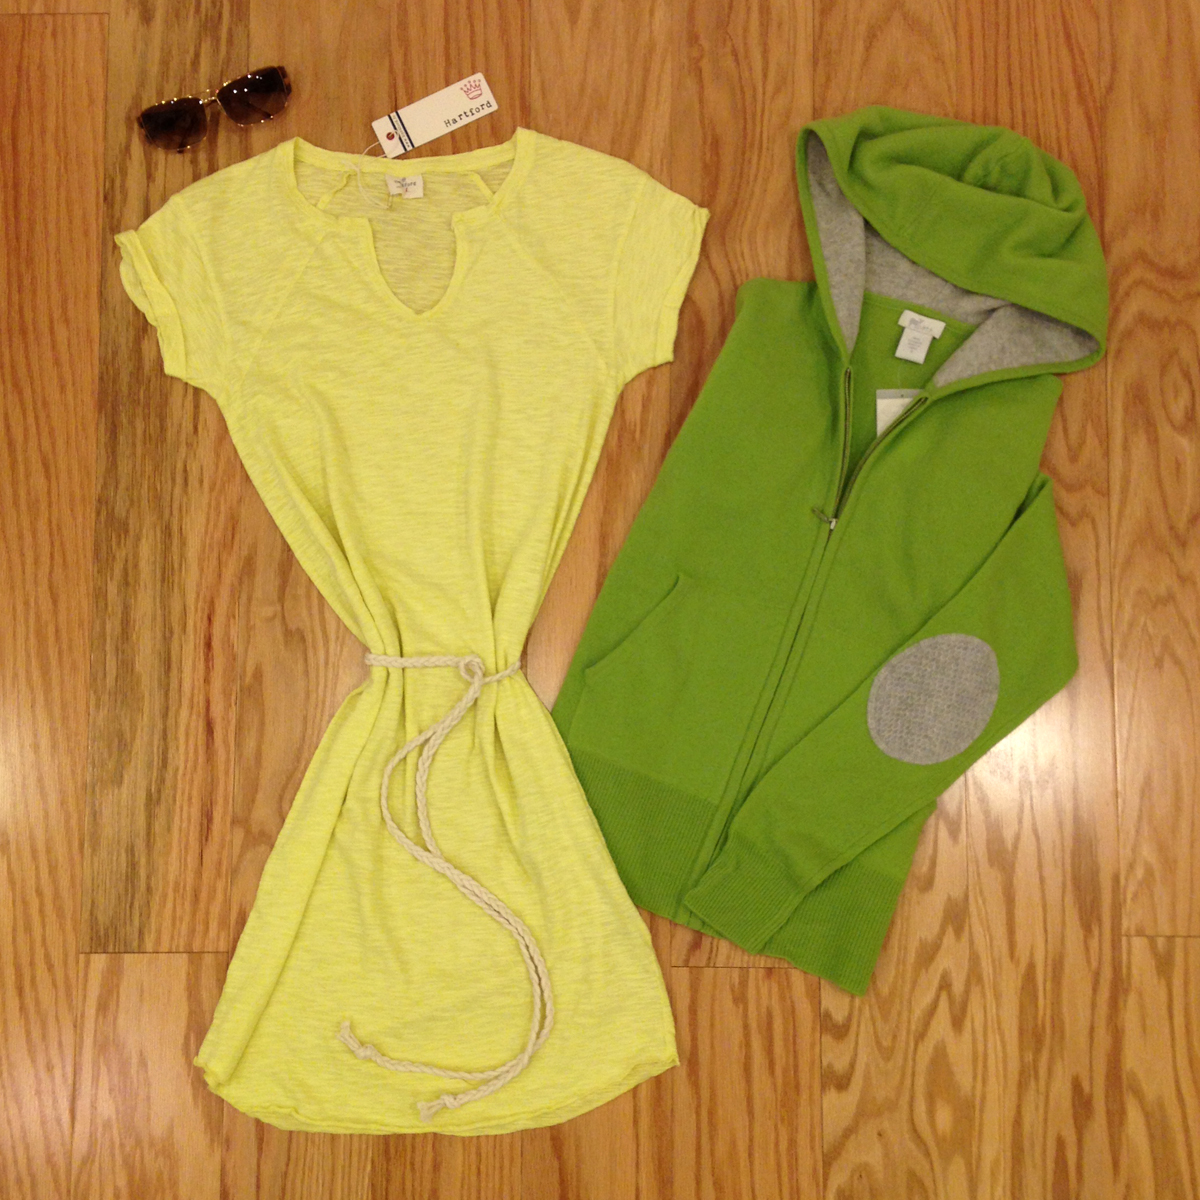 {yellow cotton dress by Hartford, green cashmere zip-up hoodie by Oats, Maui Jim sunglasses}